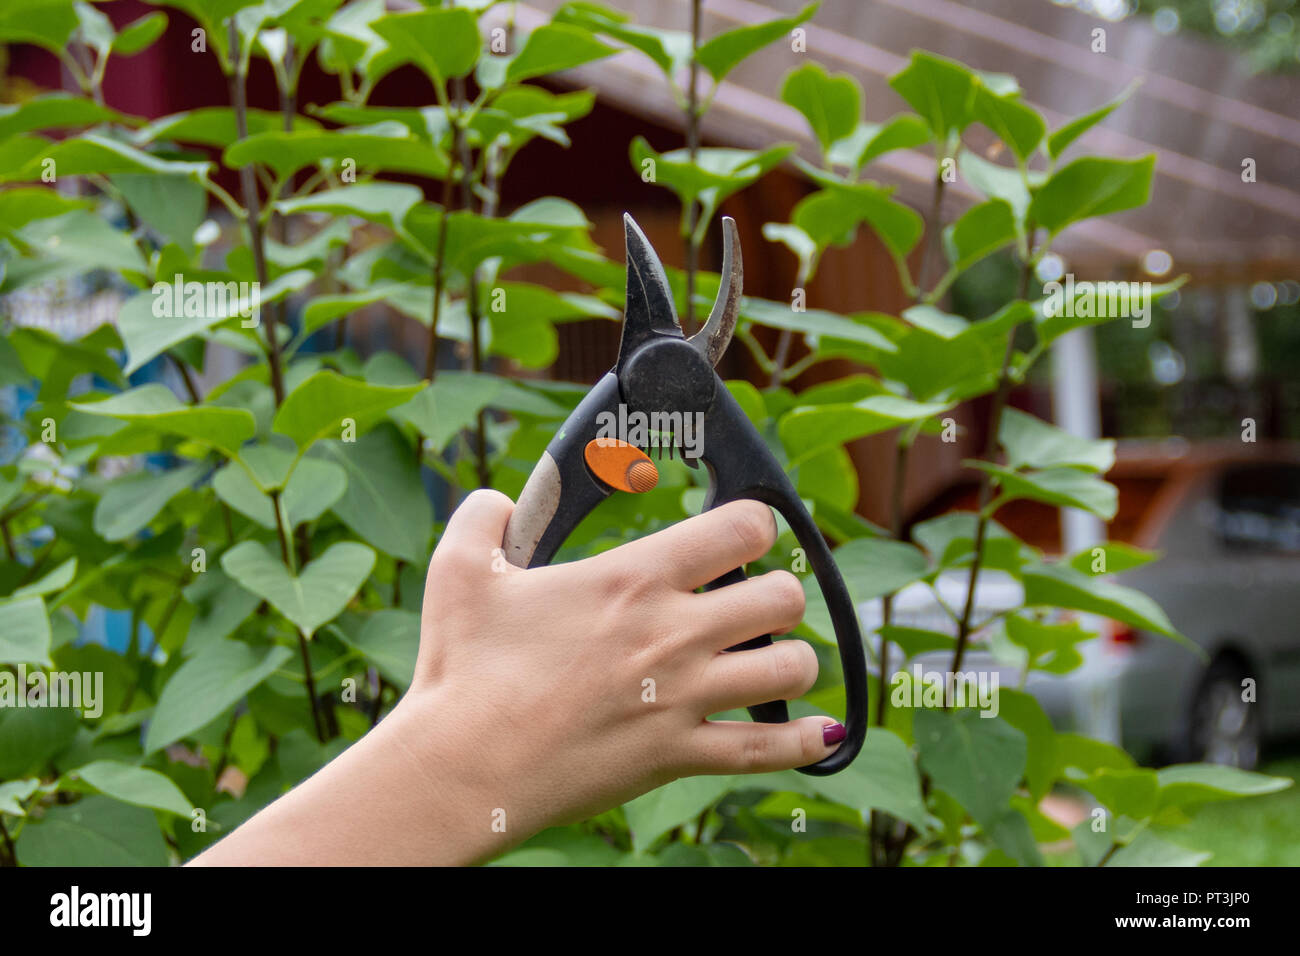 Garden tool pruner in woman hand on branch background - Stock Image